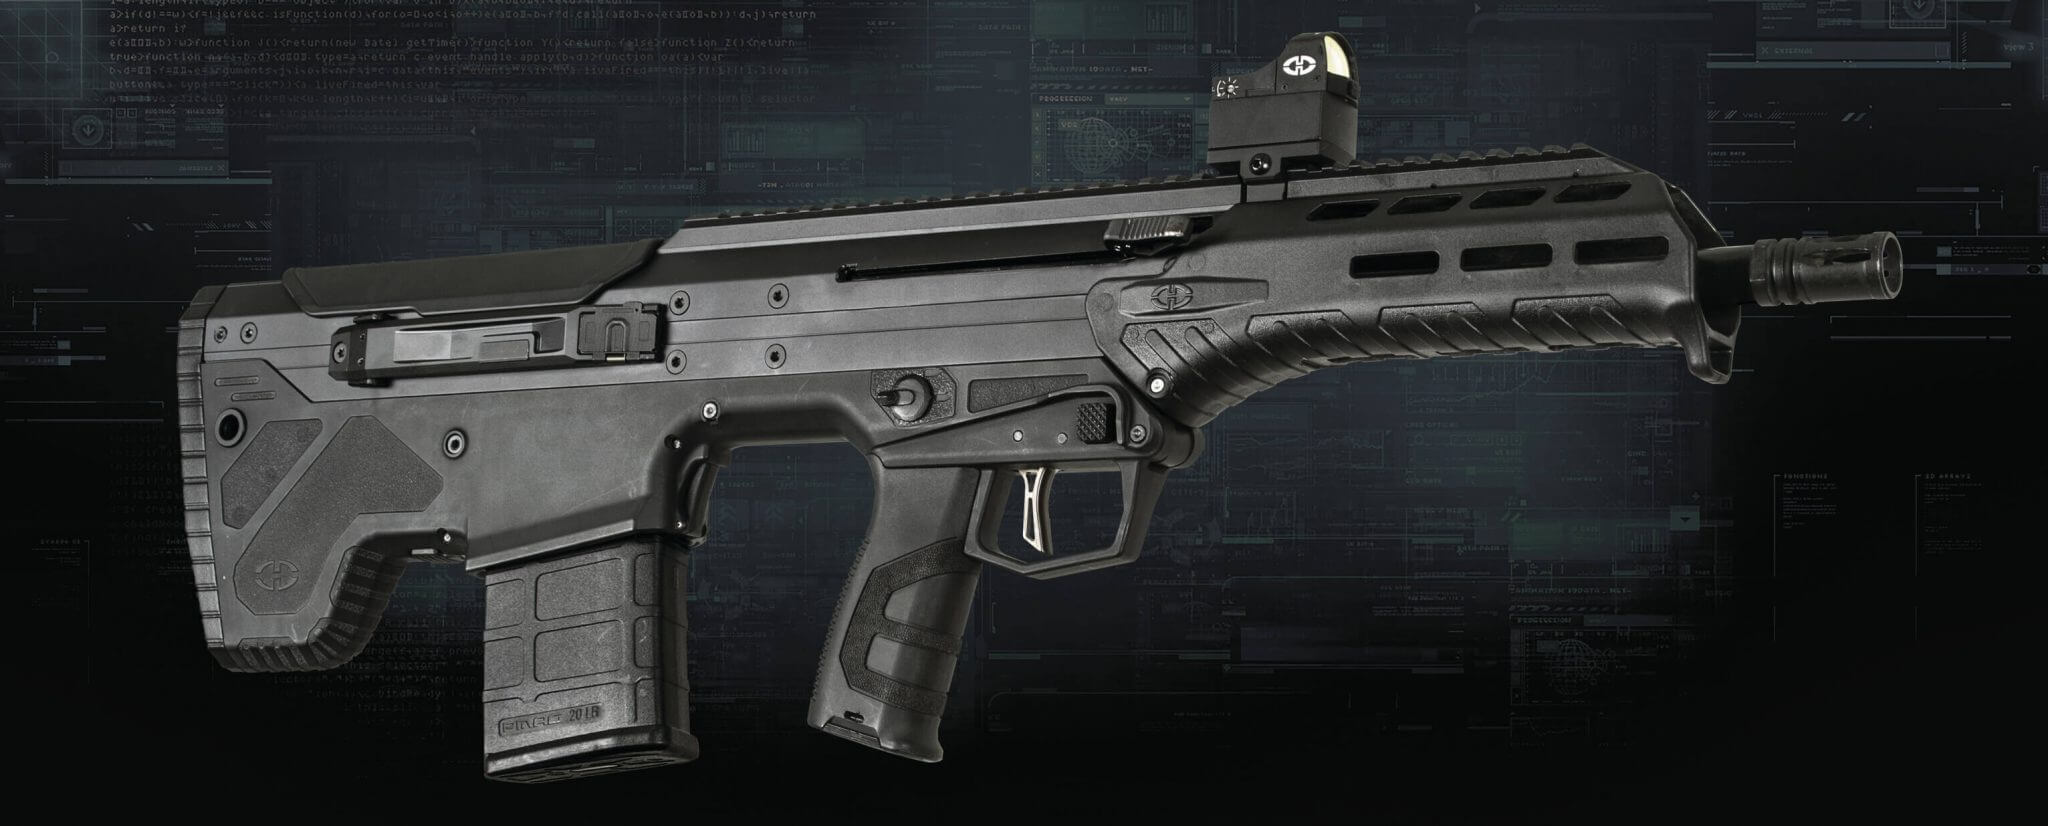 DT MDR Micro Dynamic Rifle by Desert Tech